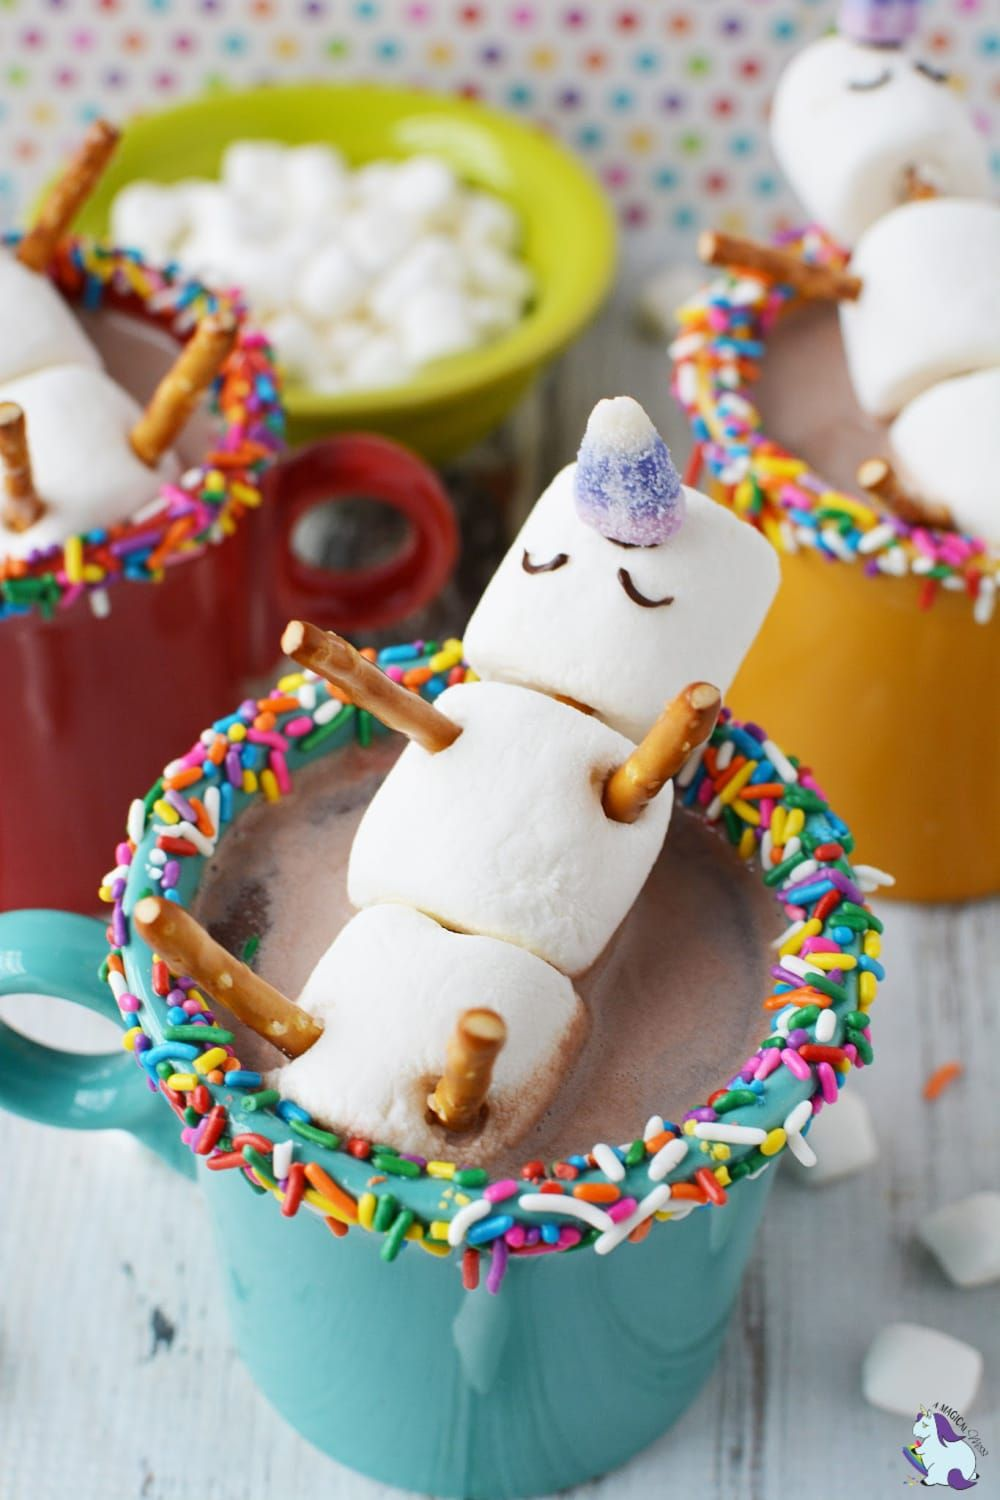 Melting unicorn hot chocolate